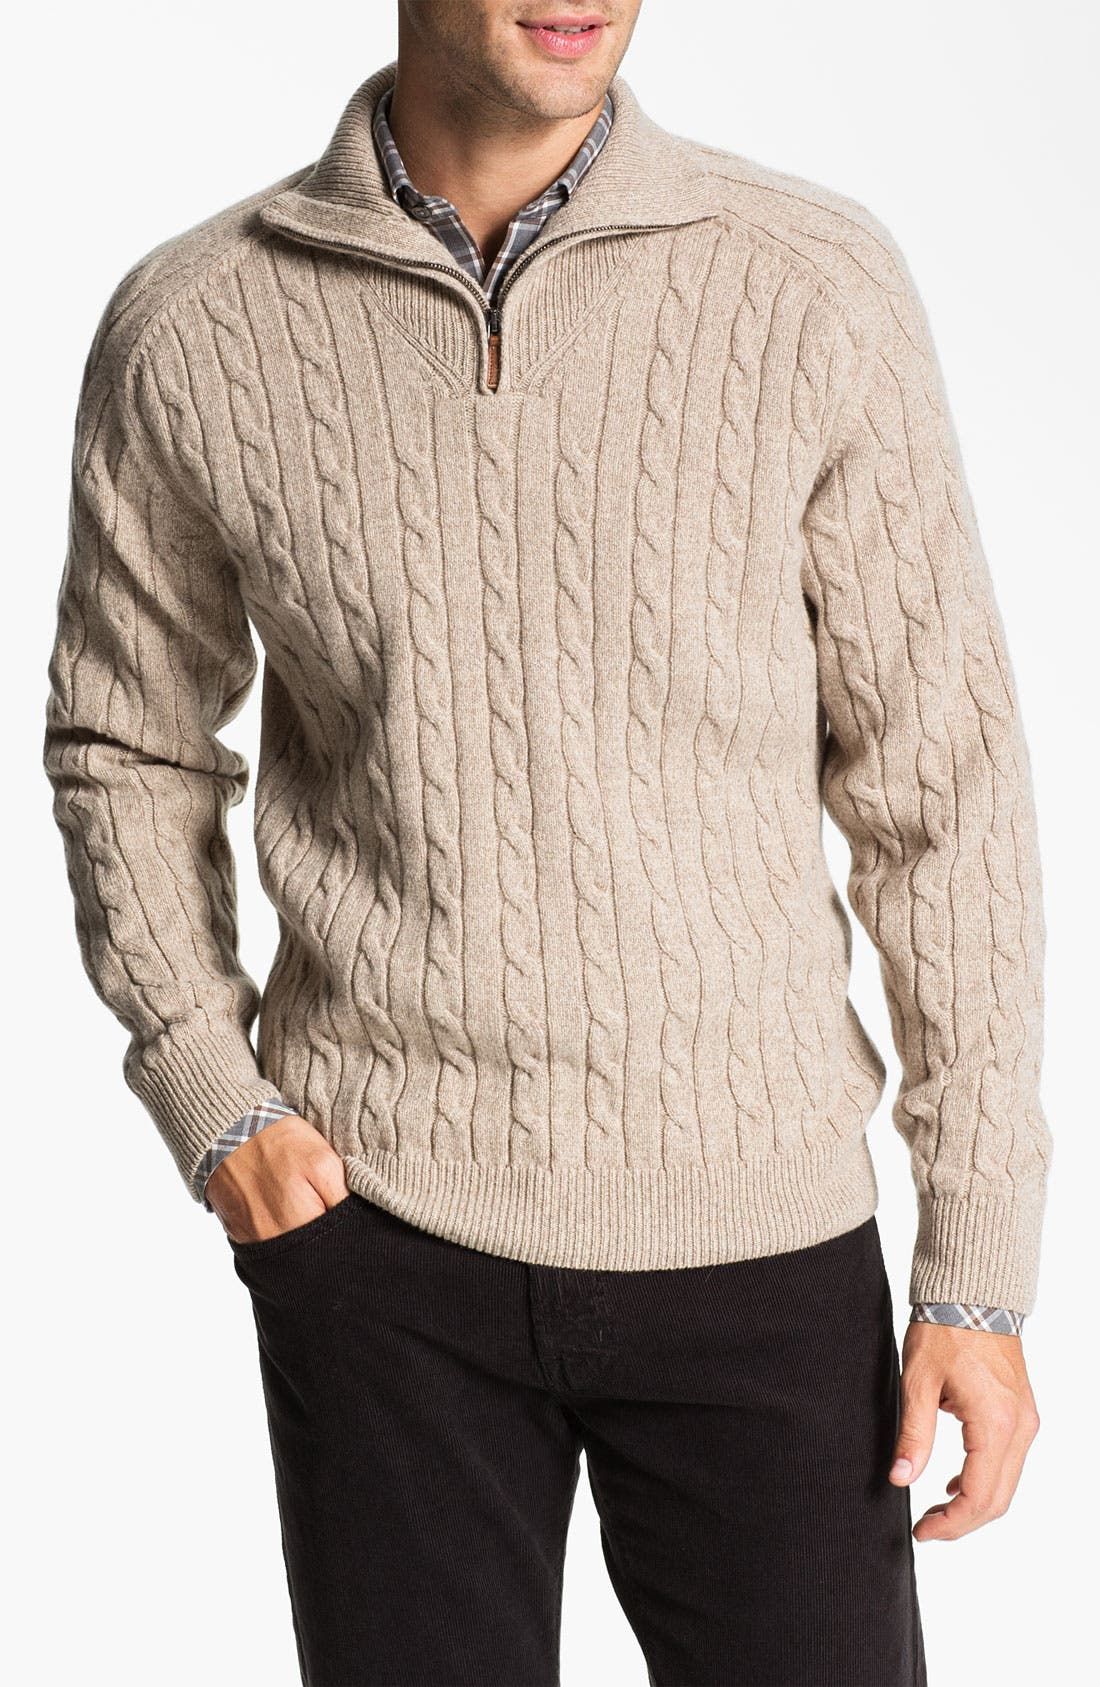 Main Image - Lora Gi Half Zip Wool & Cashmere Sweater